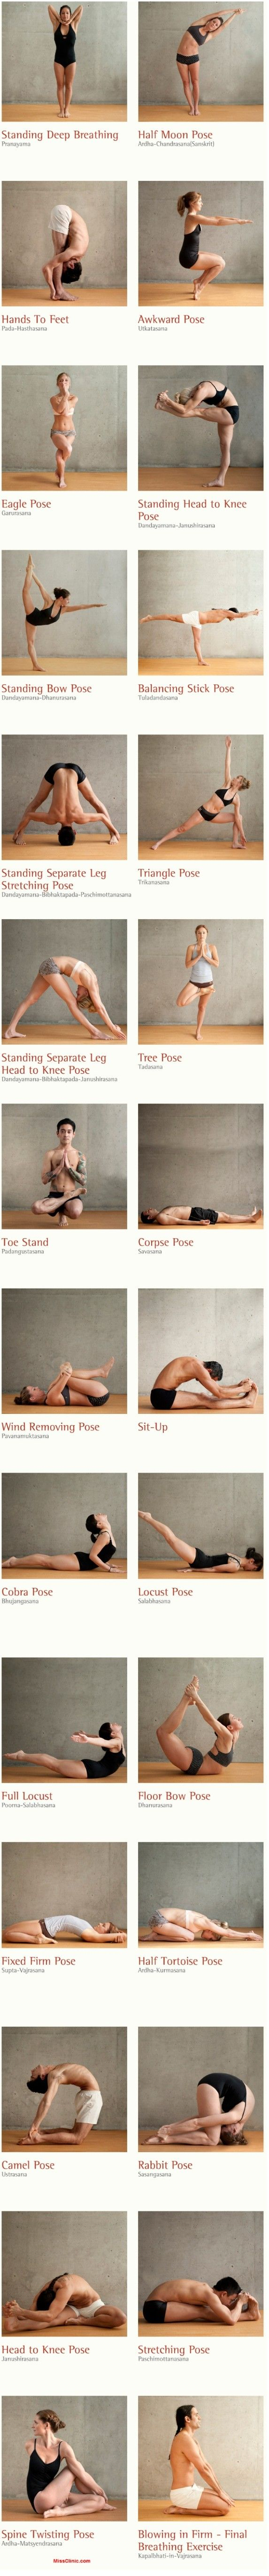 26 Healthy Yoga Postures... All from our beautiful #YogaPoses gallery!